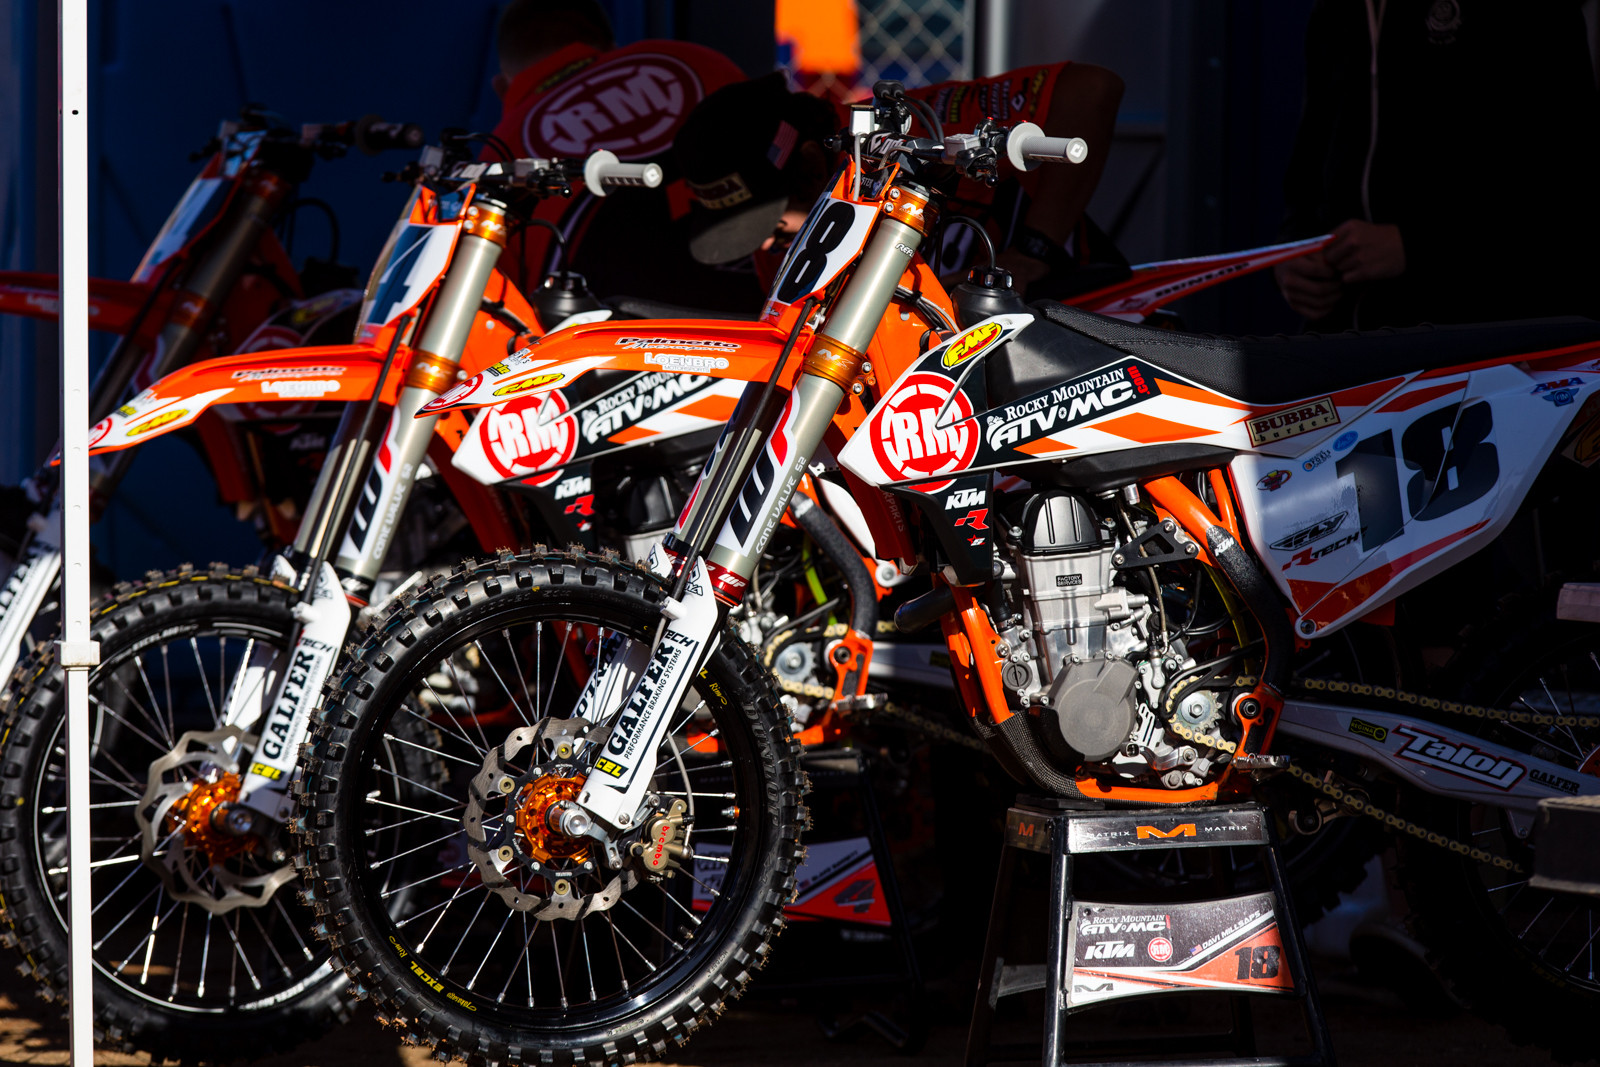 Rocky Mountain ATV/MC KTM Team - 2017 KTM Supercross Factory and Support Team Intro - Motocross Pictures - Vital MX